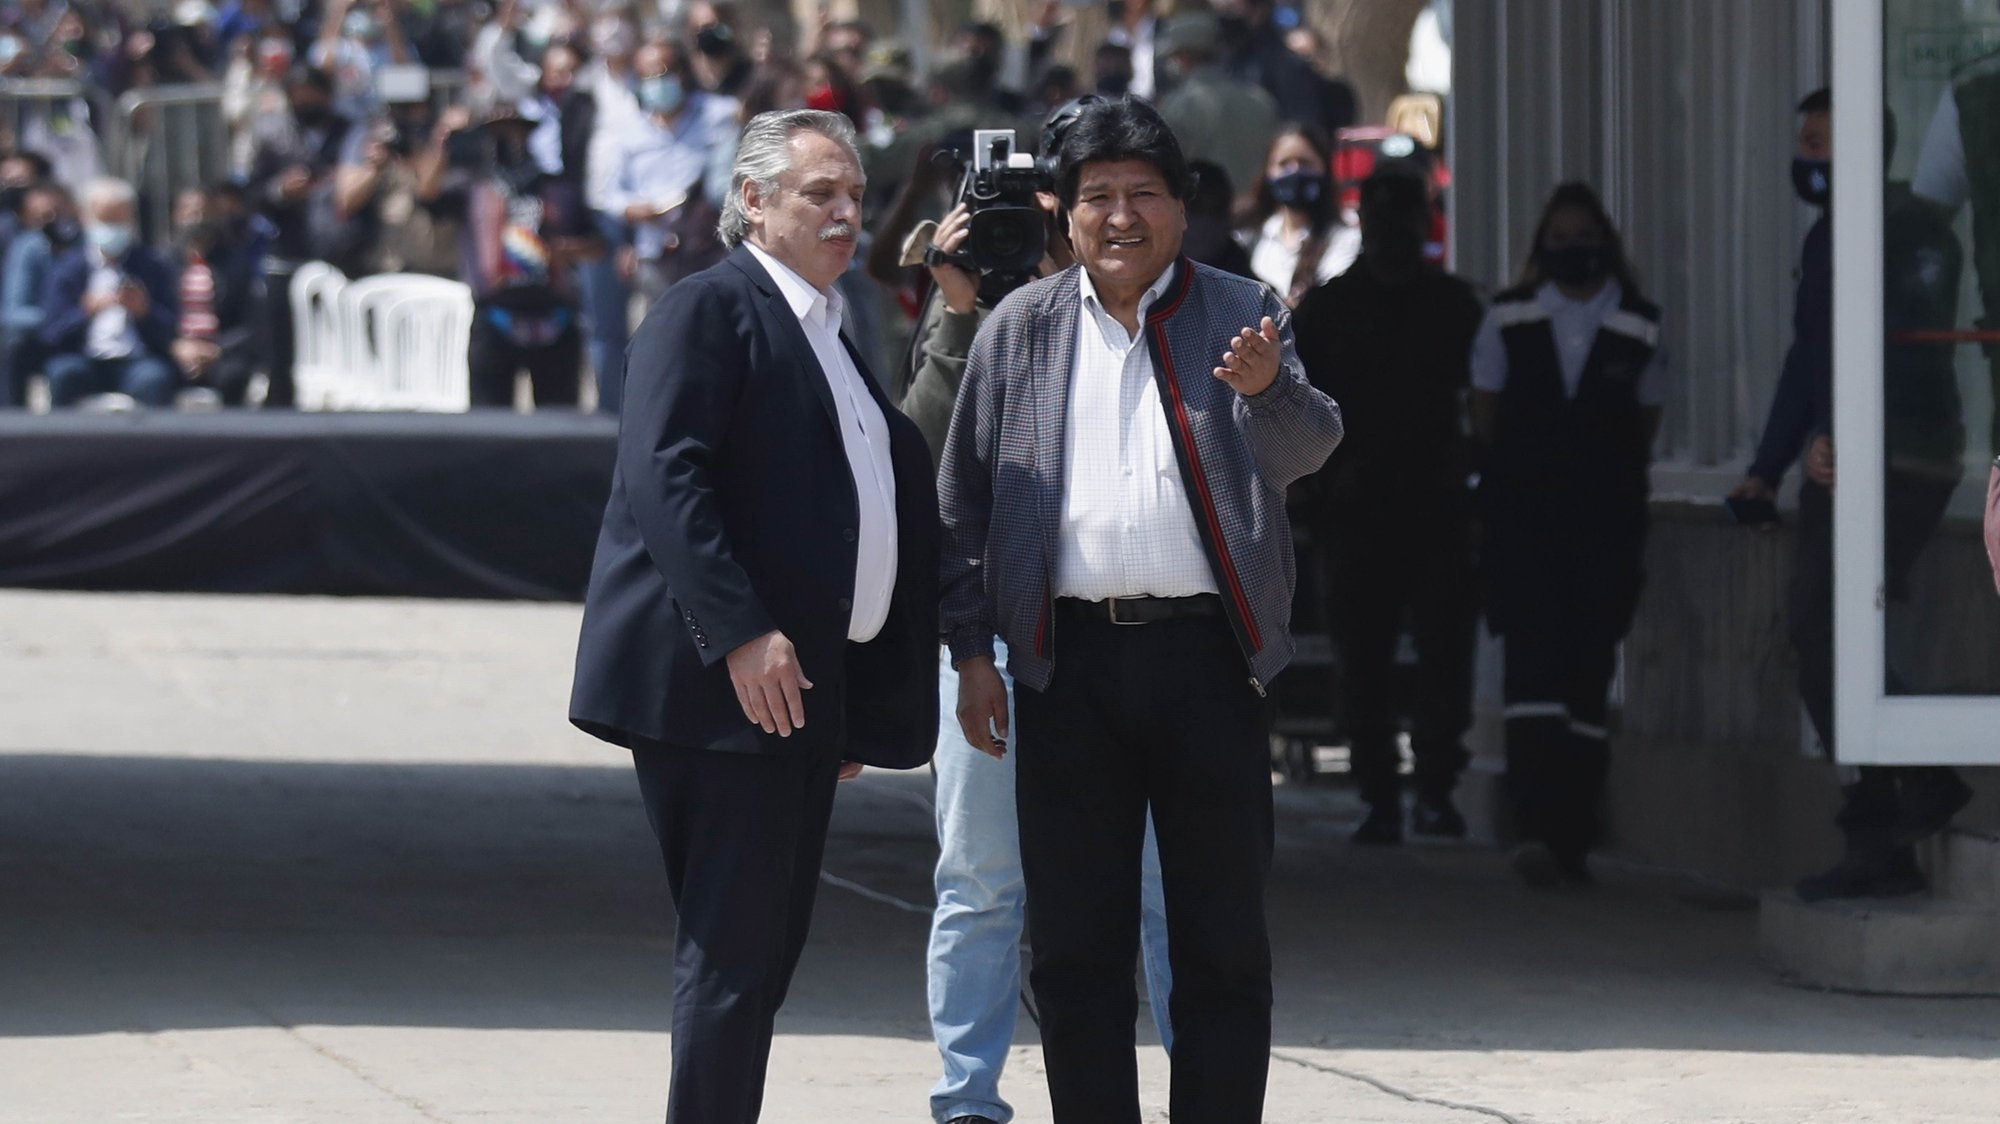 epa08809851 Former Bolivian President Evo Morales (R) with Argentinian President Alberto Fernandez (L) attend a welcome ceremony in Villazon, a Bolivian town in the frontier with Argentina, 09 November 2020. After eleven months in Argentina, the former Bolivian President Evo Morales has returned to his country. Morales' return was possible thanks to the new Government led by Luis Arce, a member of the Morales' party Movement for Socialism.  EPA/PAOLO AGUILAR